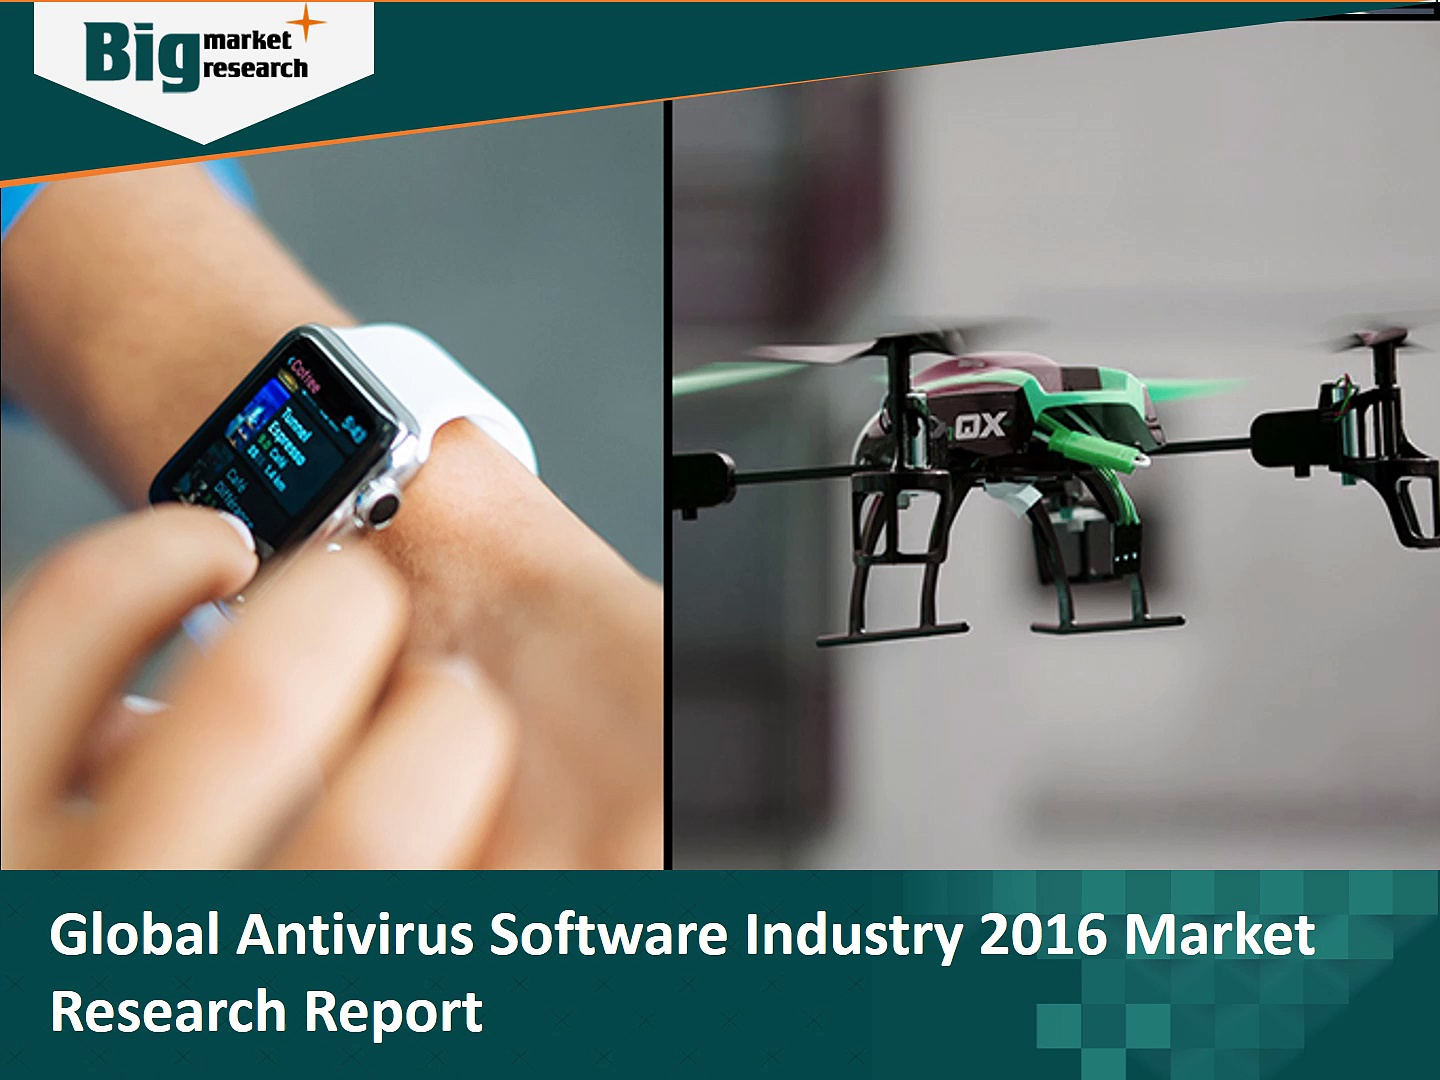 Global Antivirus Software Industry 2016 Market Research Report